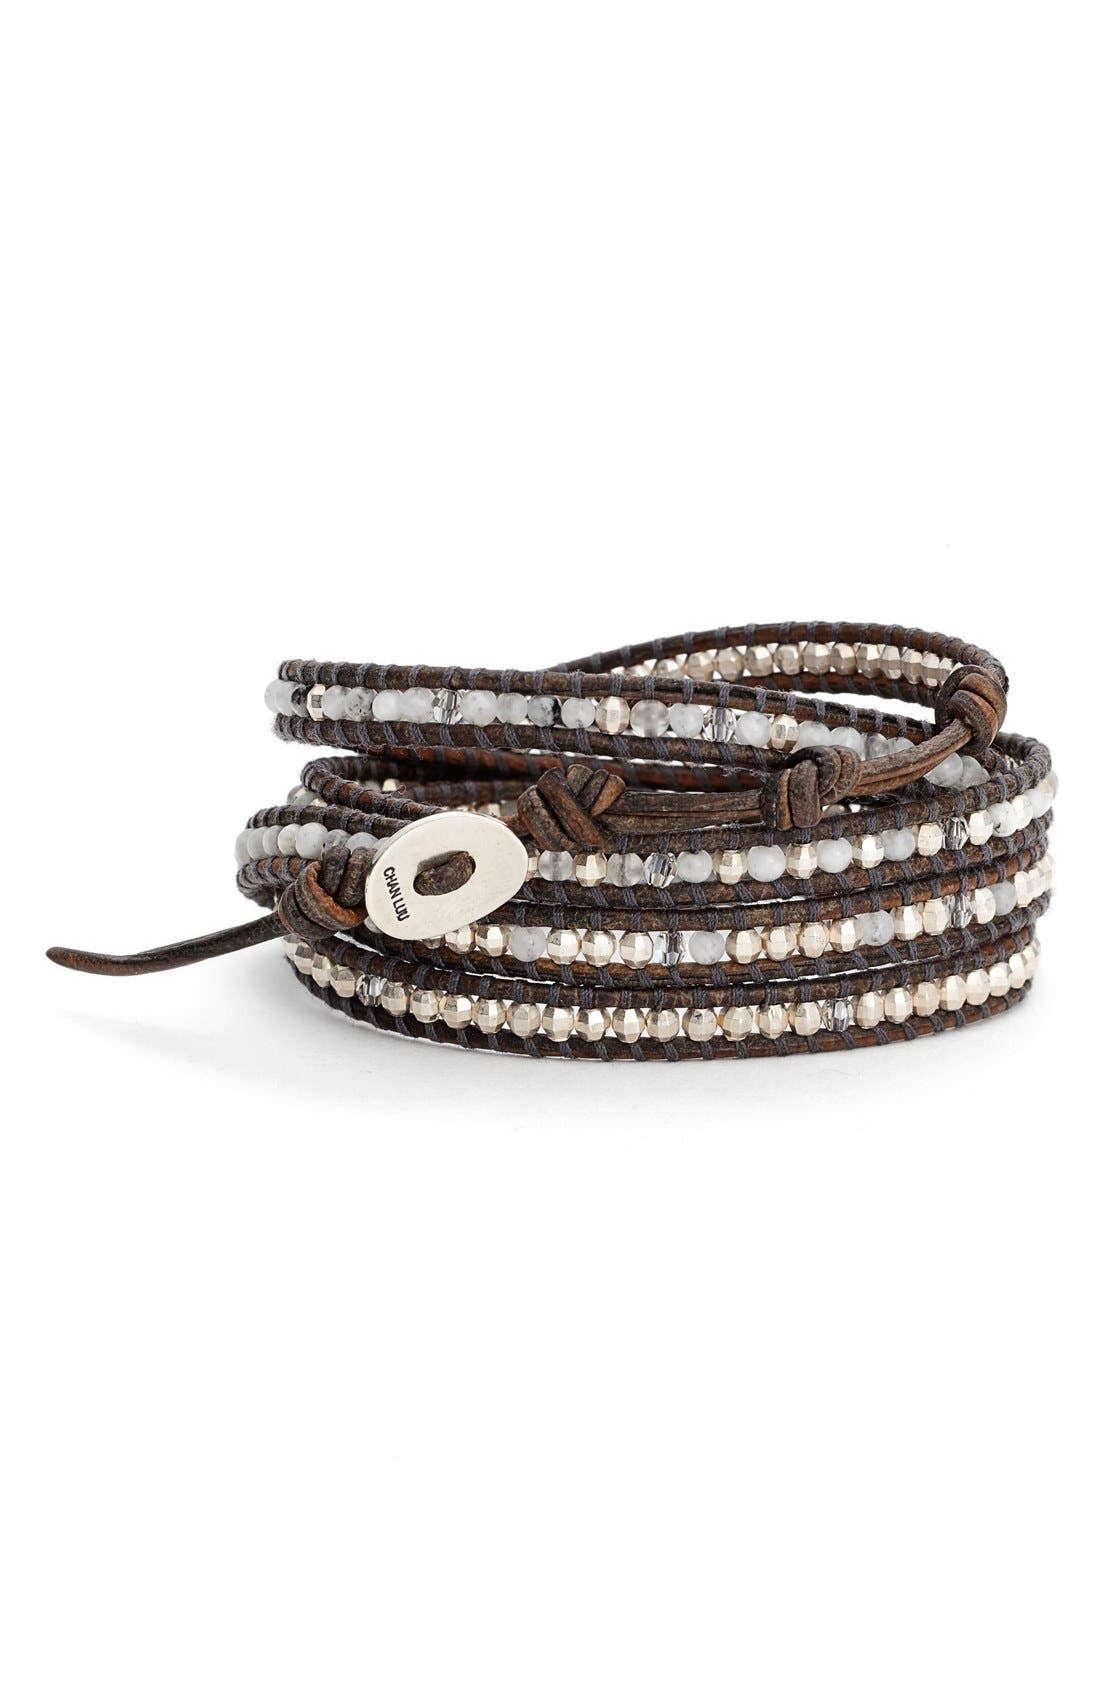 Alternate Image 1 Selected - Chan Luu Leather Wrap Bracelet